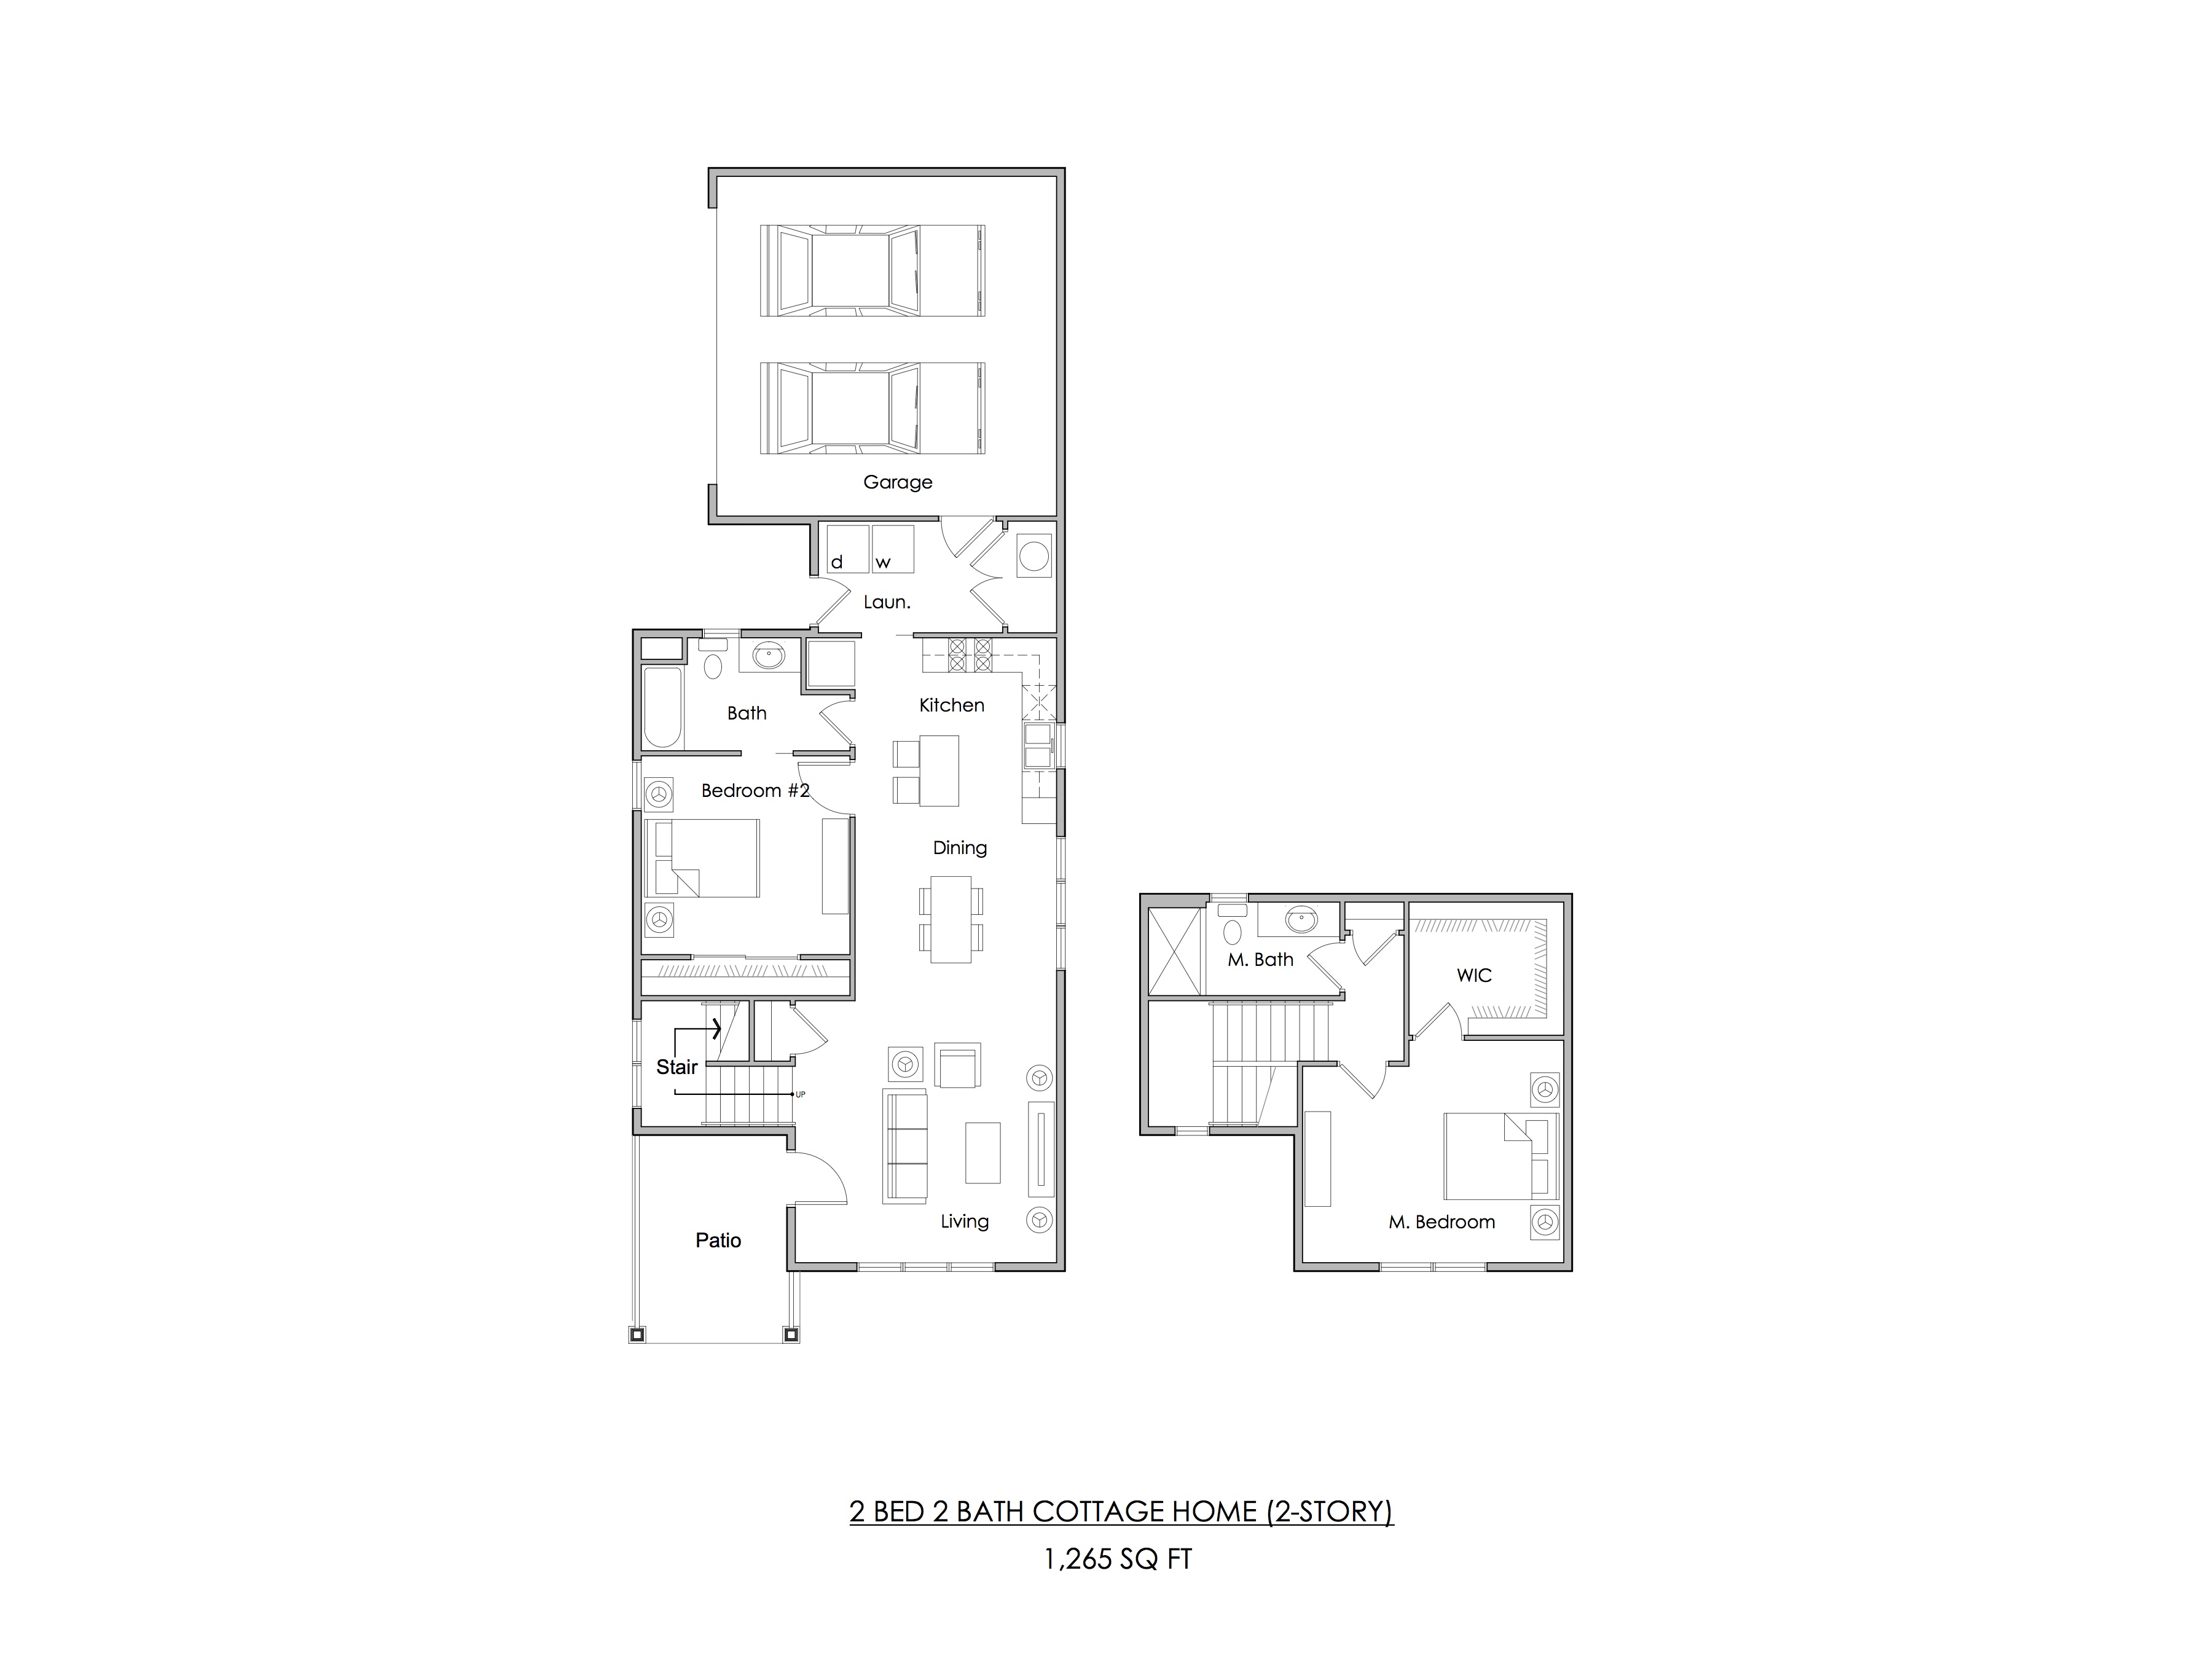 Two bedroom Cottage Home floor plan (2-story) — 1,265 sq ft.